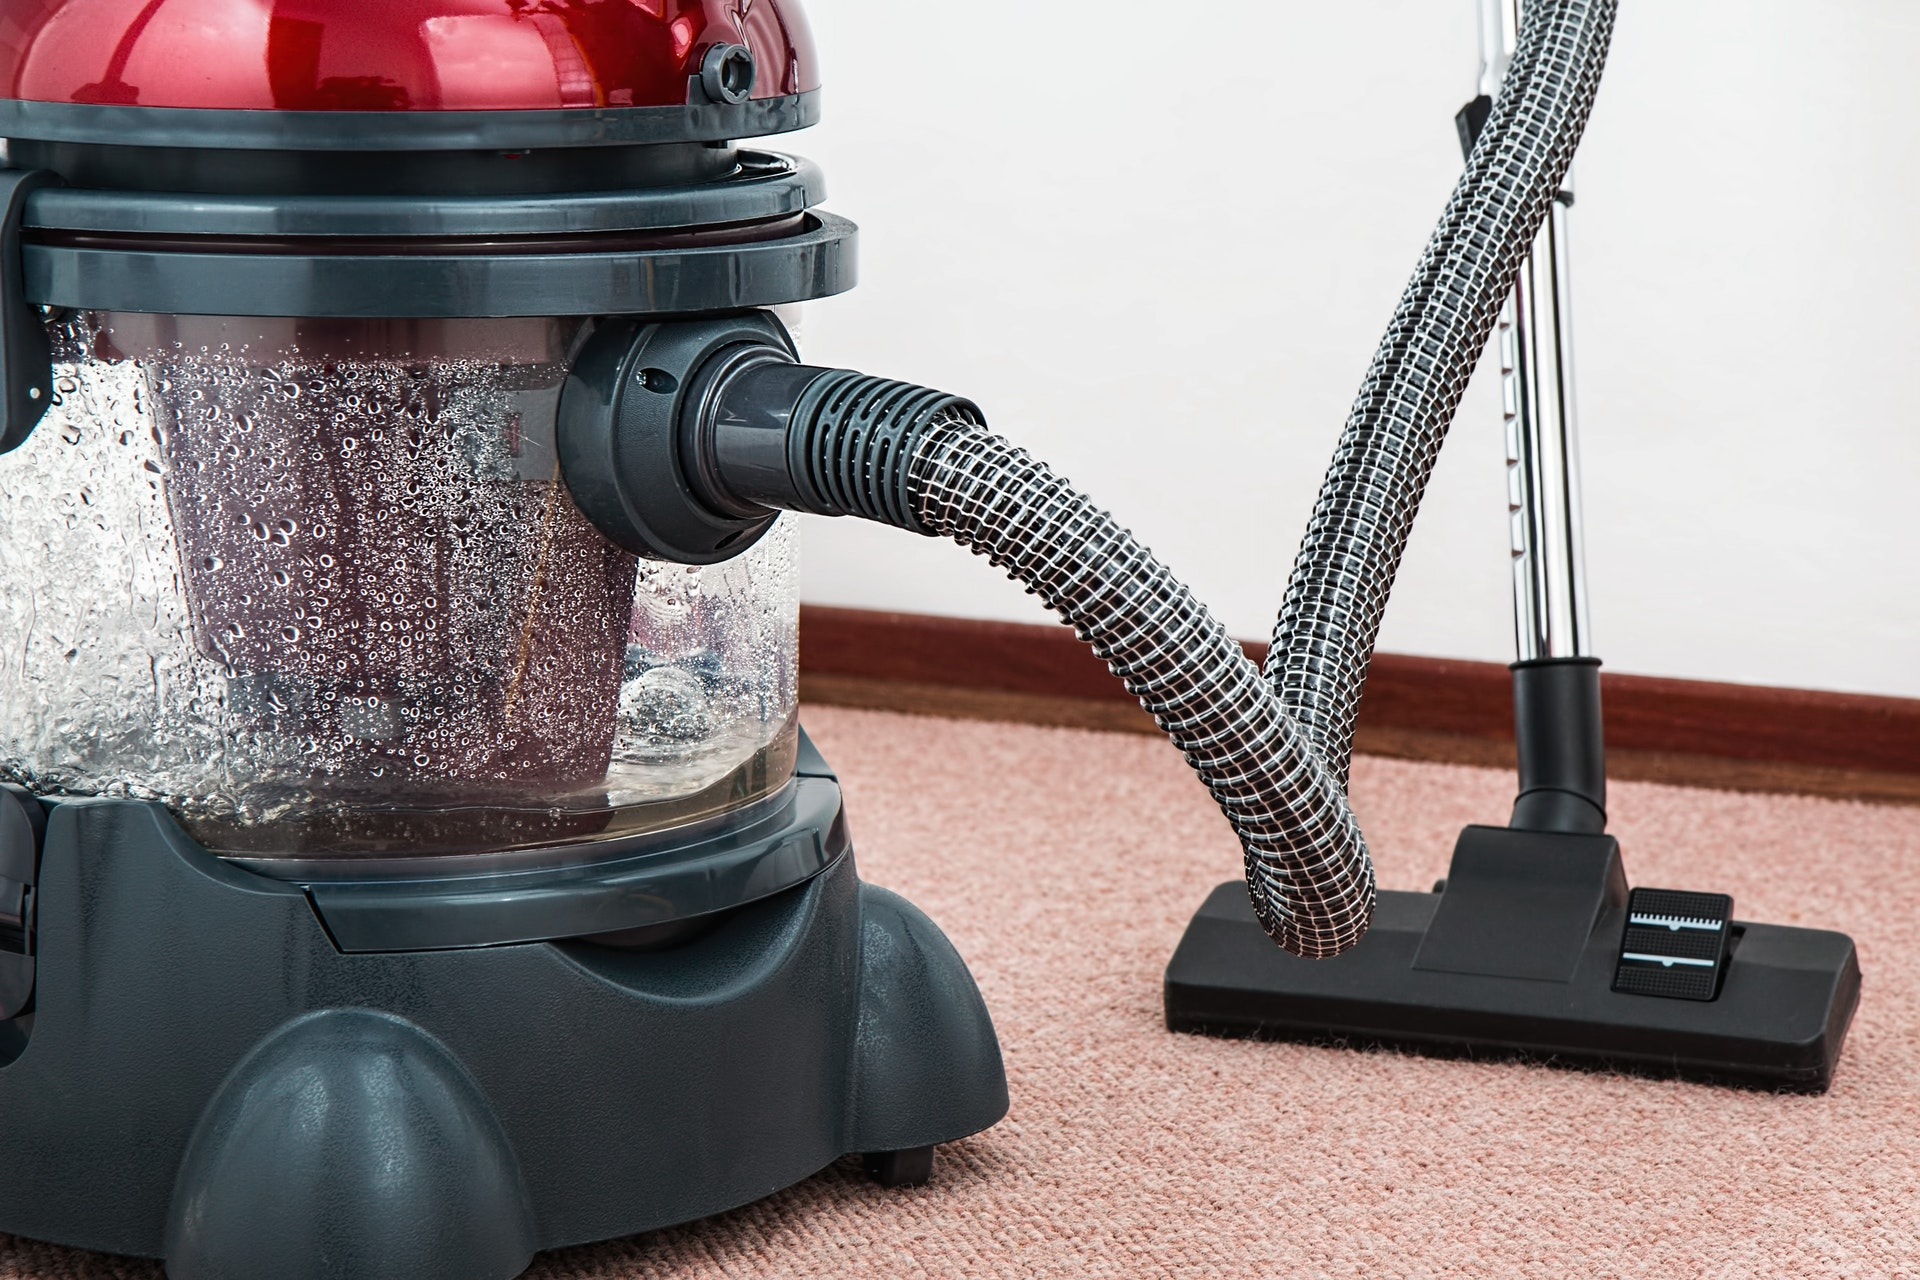 How to Maintain Your New Carpet?